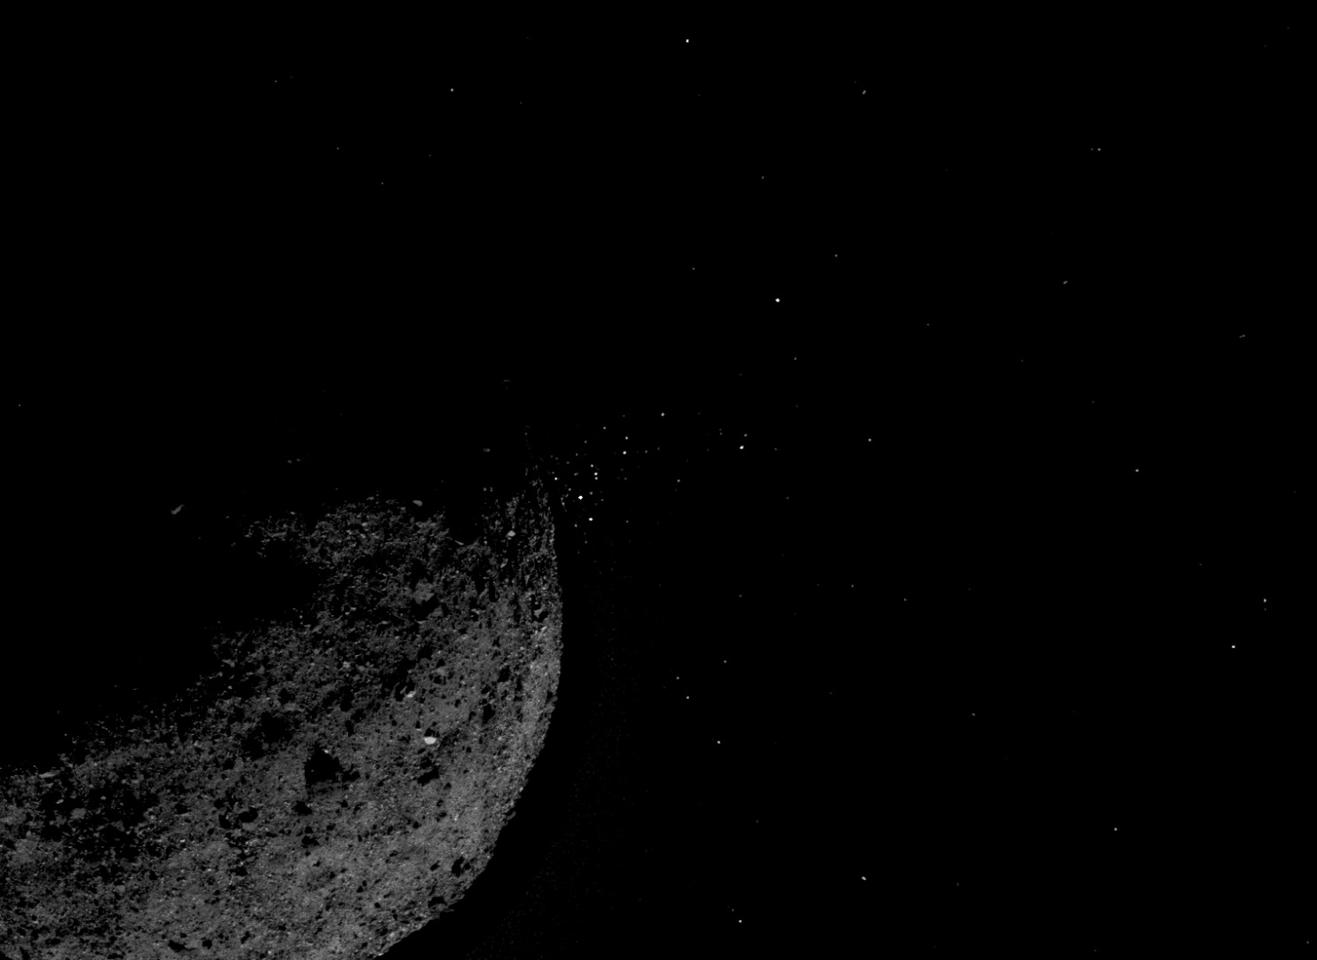 Image showing Bennu ejecting particles into space